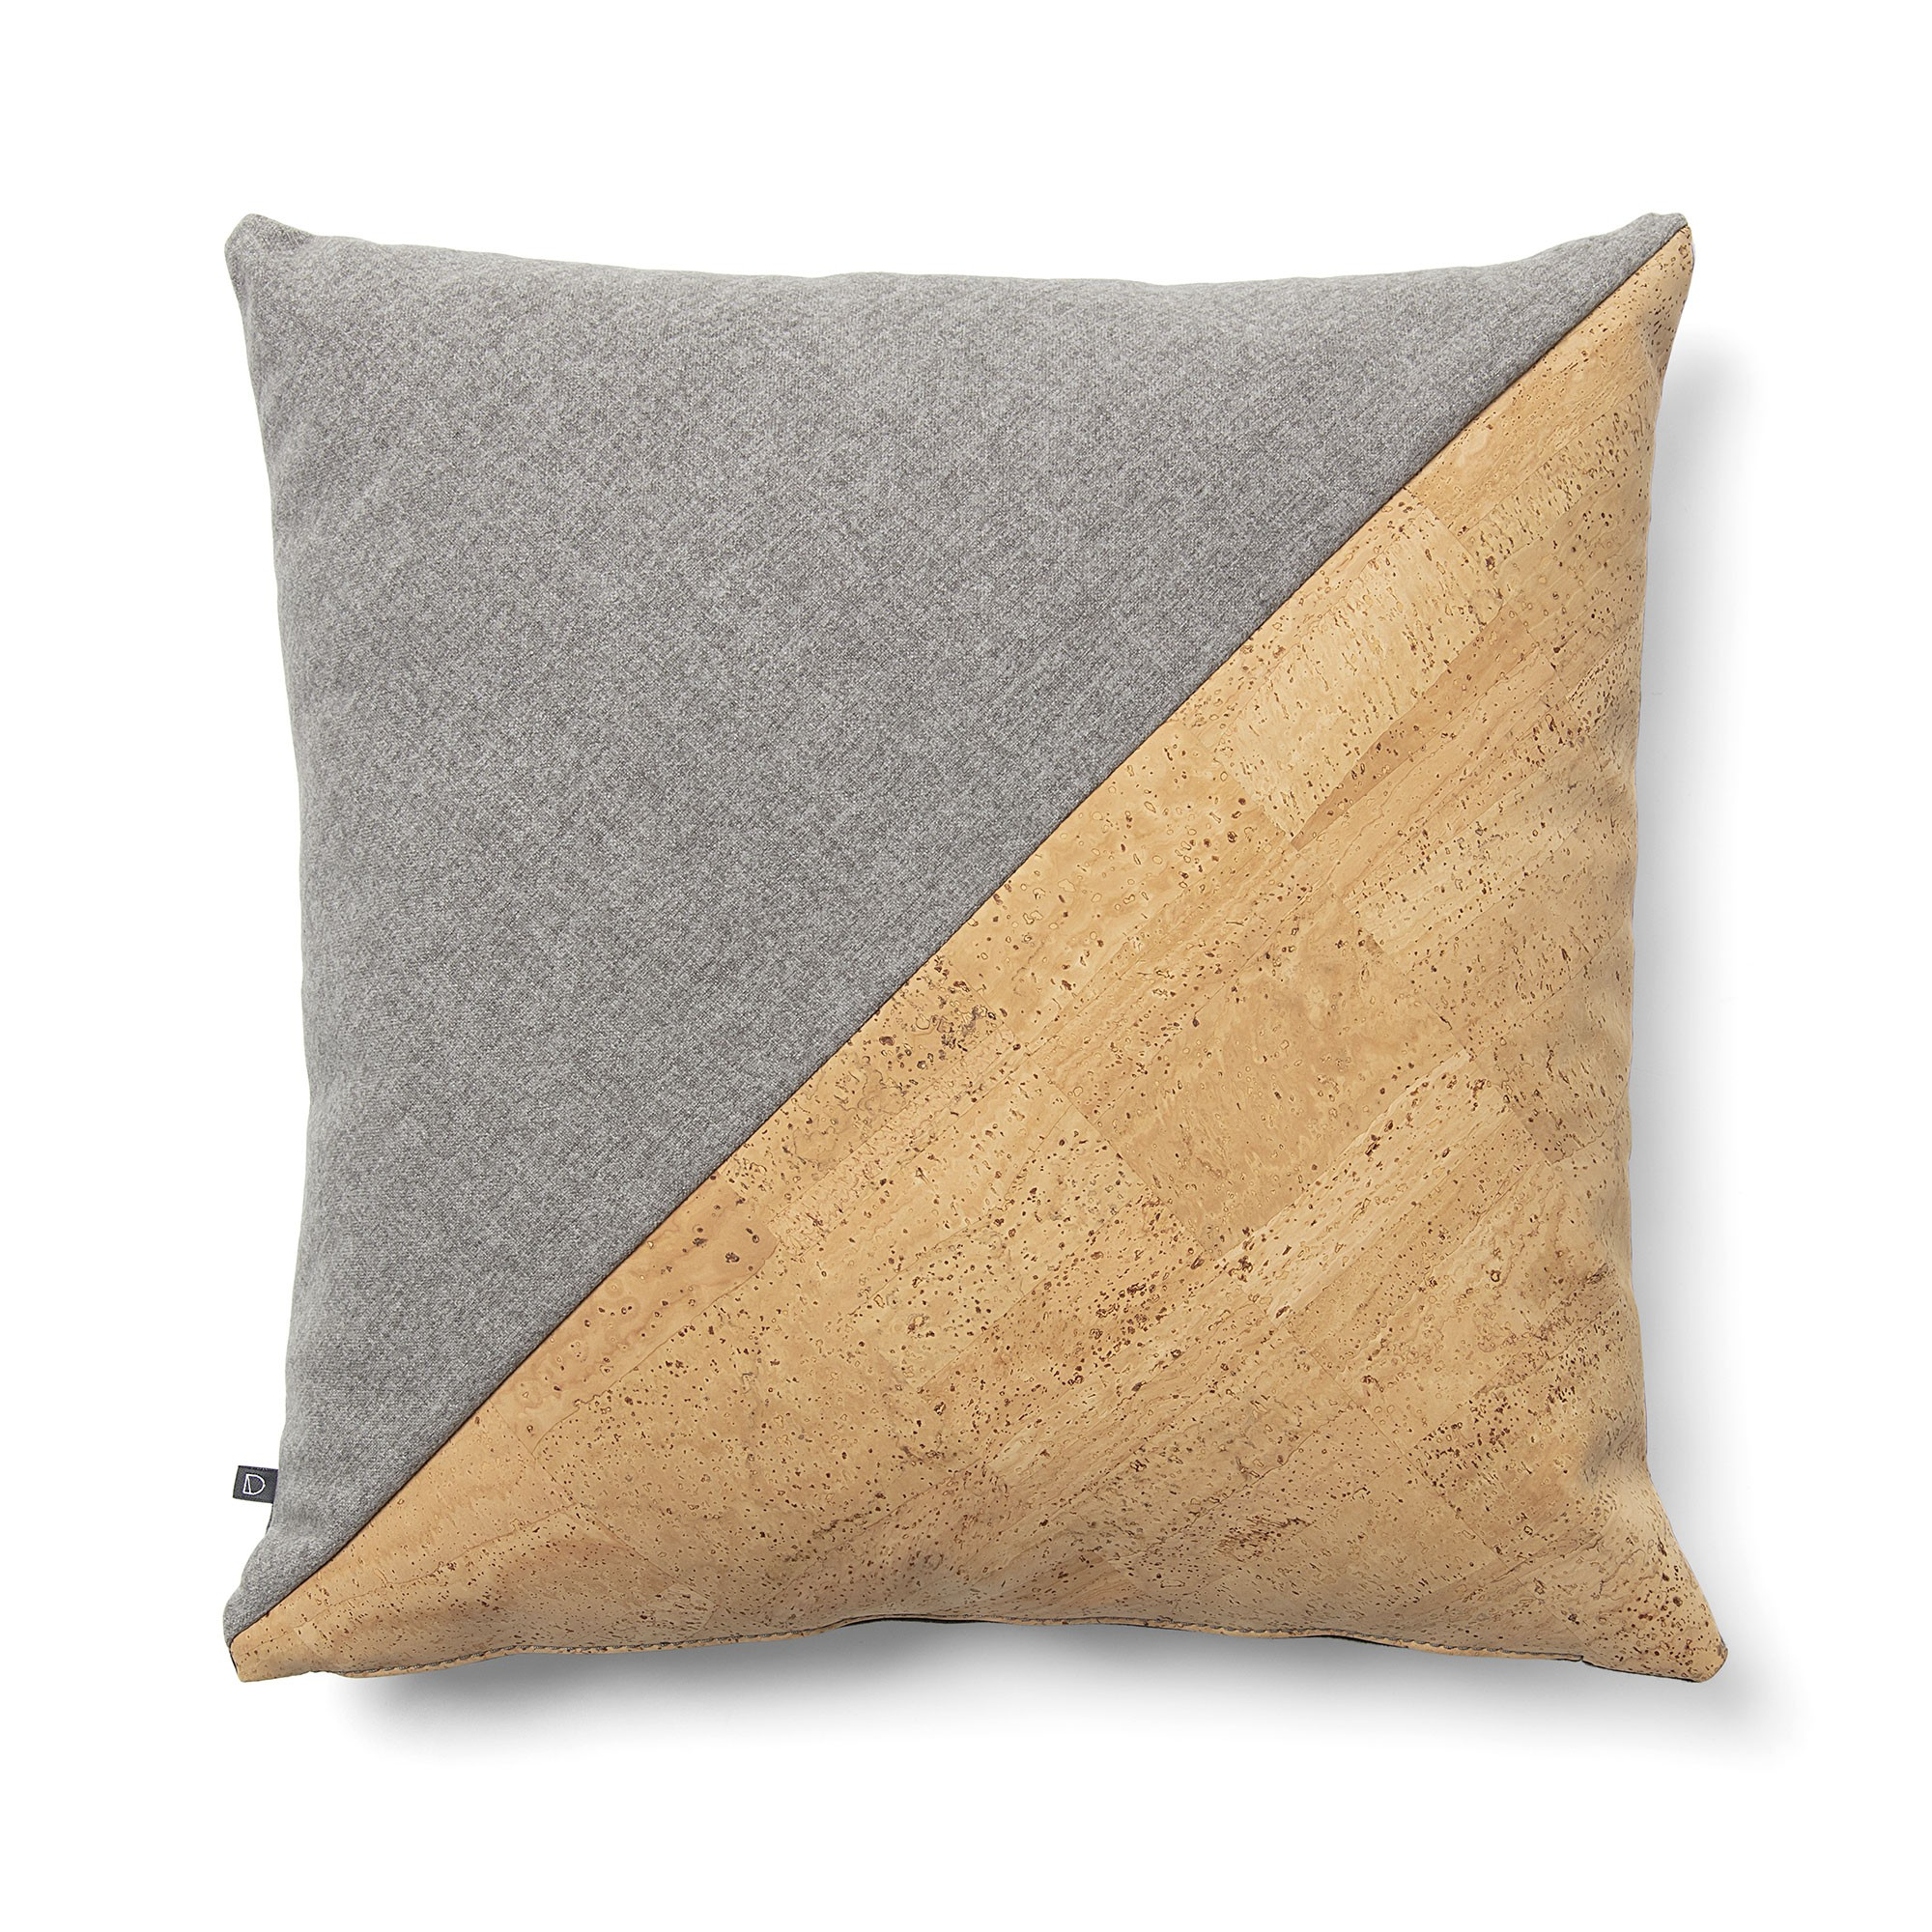 Osborne Fabric Scatter Cushion, Grey / Cork / Graphite